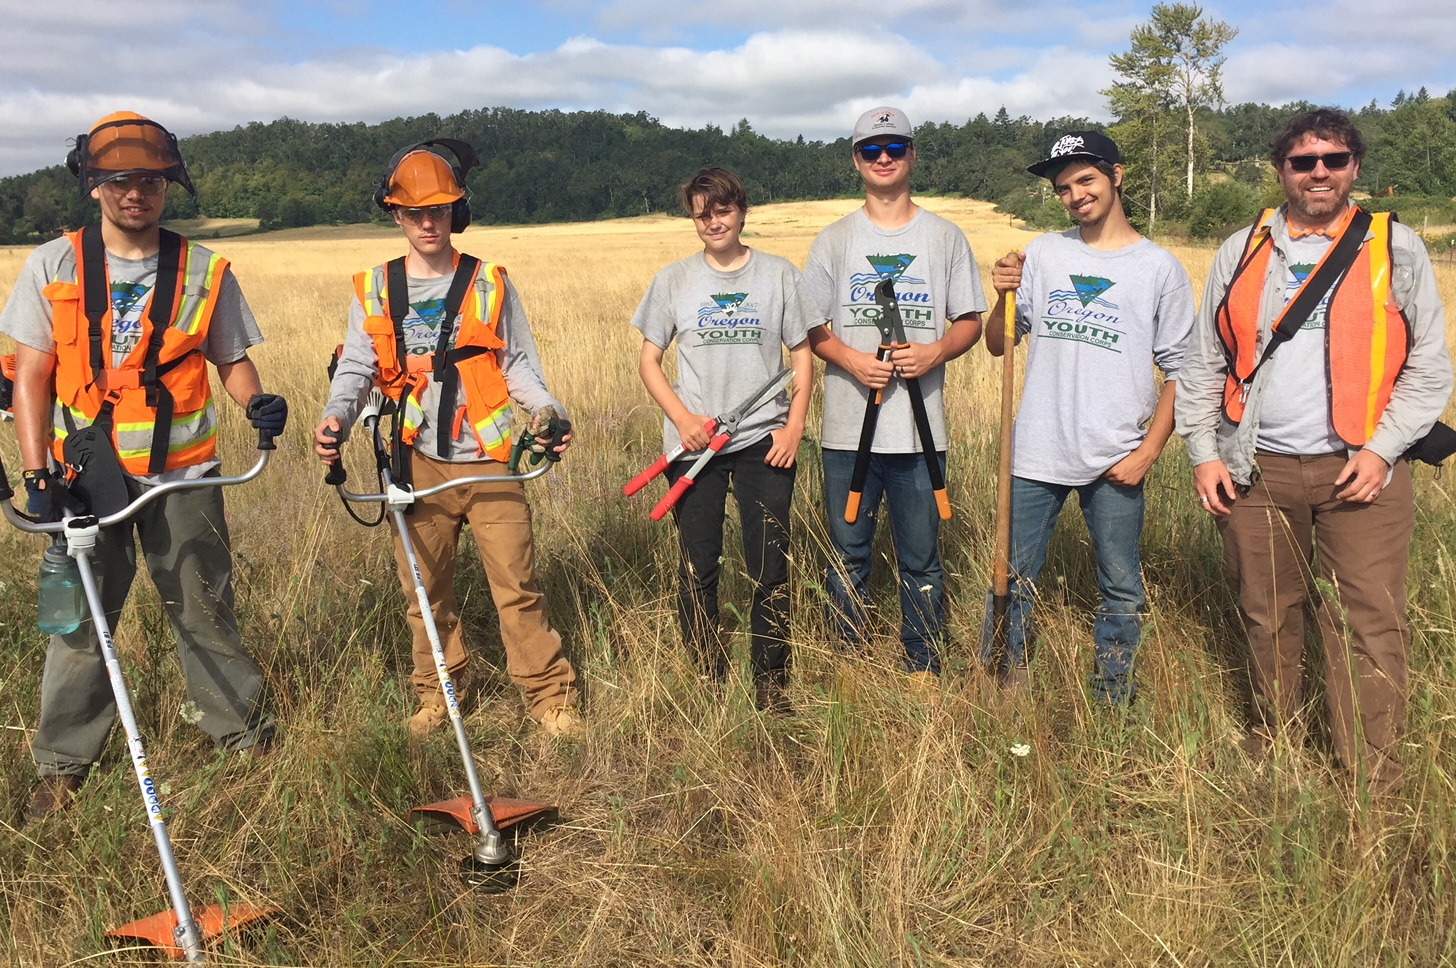 Crew supervisor, Craig Annsa (far right) oversees a work crew of 5 on assignment for the BLM to remove invasive species in a field off Greenhill Road in West Eugene.